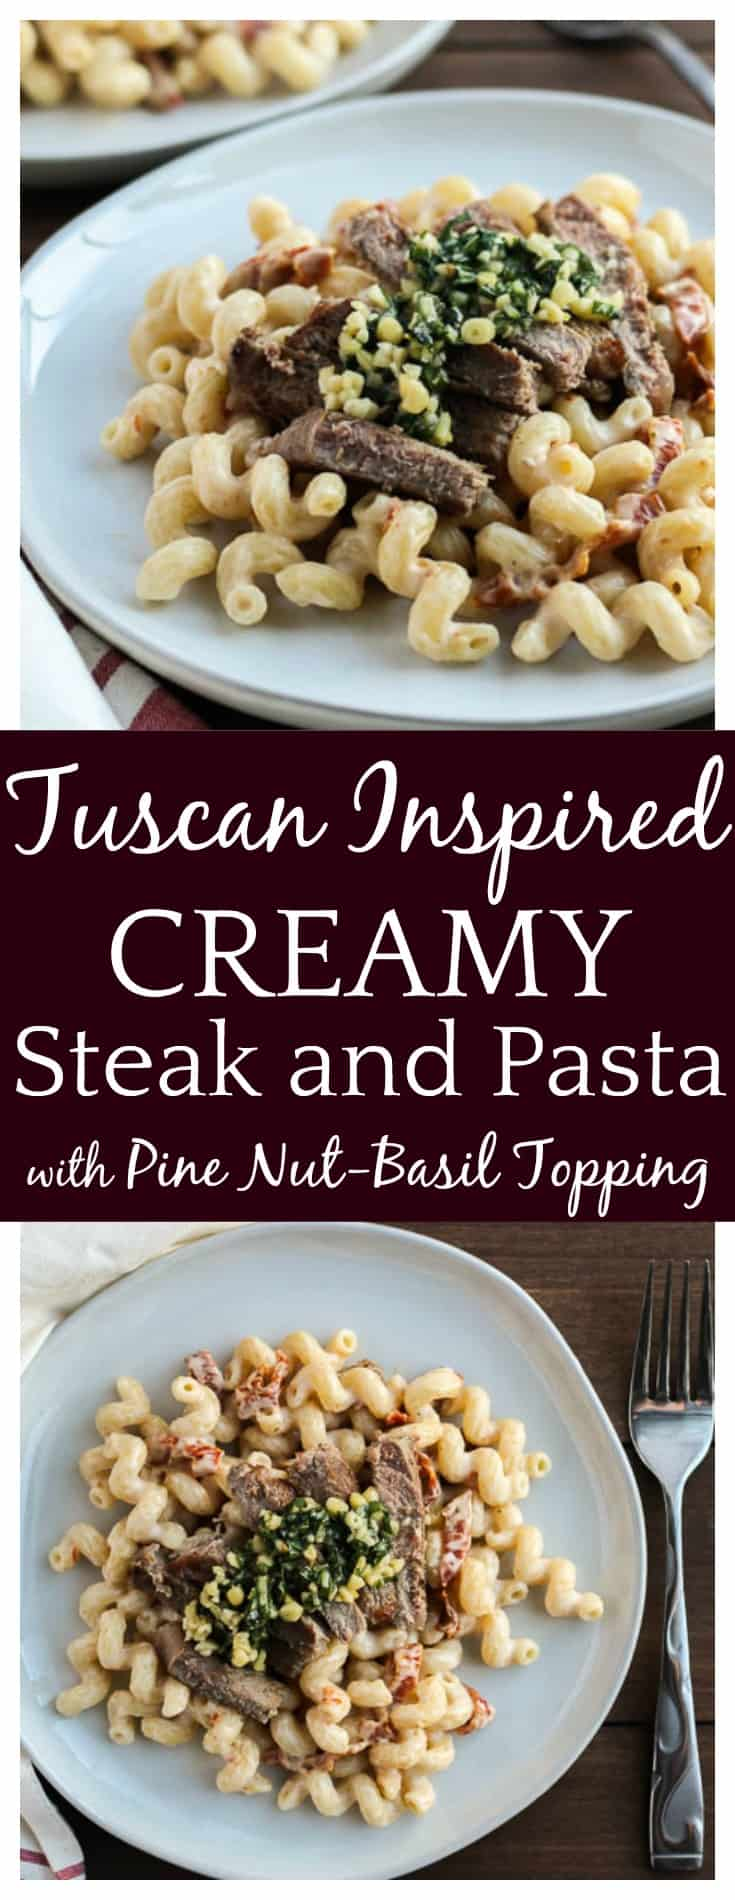 This incredibly flavorful Tuscan Inspired Steak and Pasta recipe will be on the table in less than 30 minutes! It's an easy recipe that's family friendly and perfect for busy weeknights! #dlbrecipes #pasta #steak #easyrecipe #steakandpasta #pastarecipes